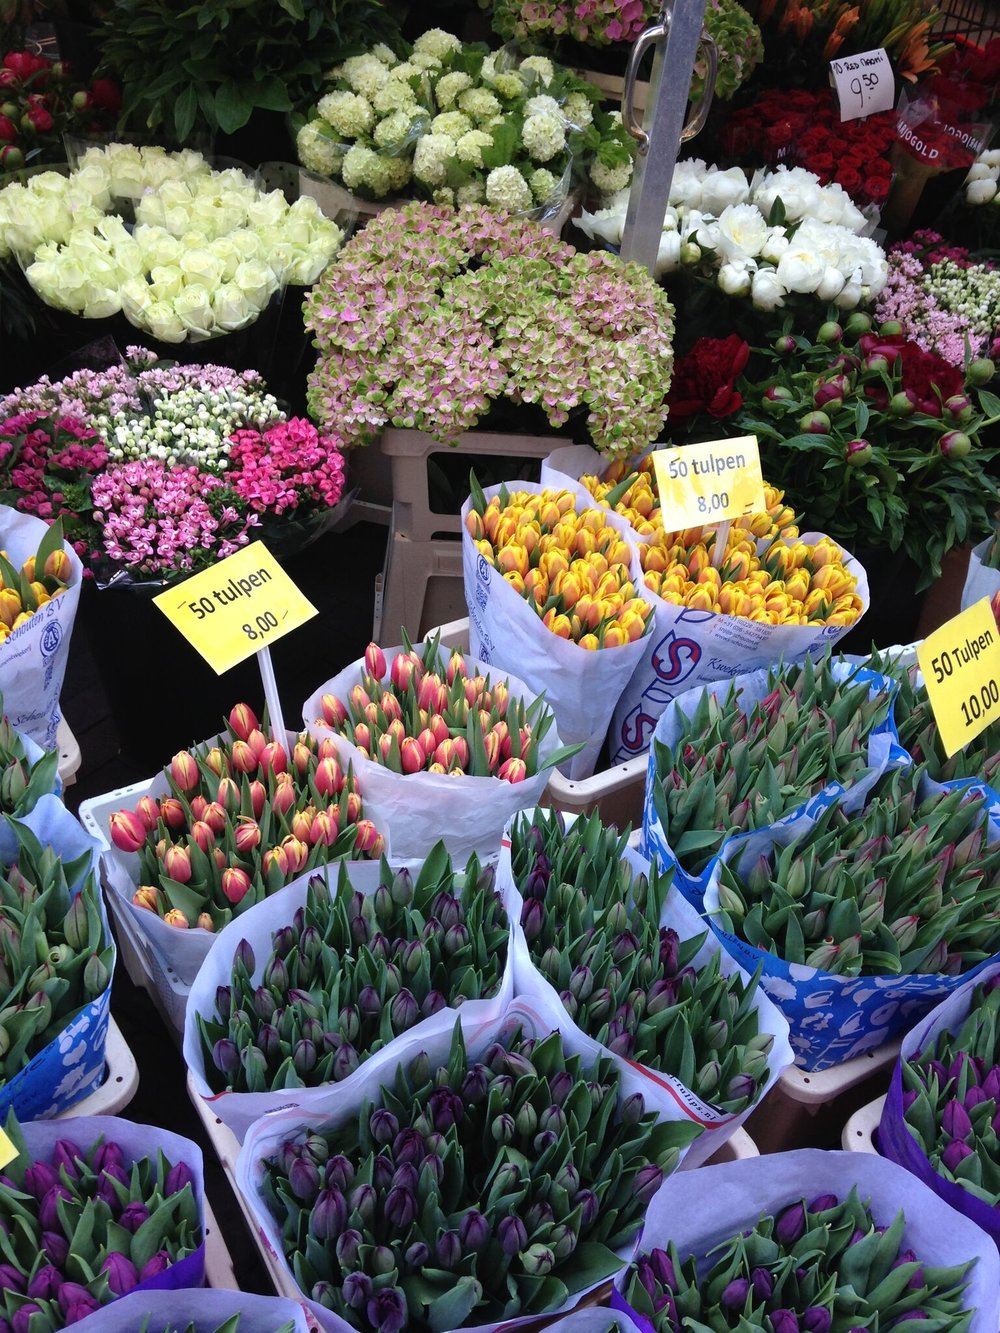 Of course, many know that Holland is known for its tulips, bulbs, and flowers.  As we walked along one of the canals, there were thousands, probably millions of flowers and bulbs for sale at the canal-side vendors.  They were beautiful!  We didn't get any.  No room in our luggage!